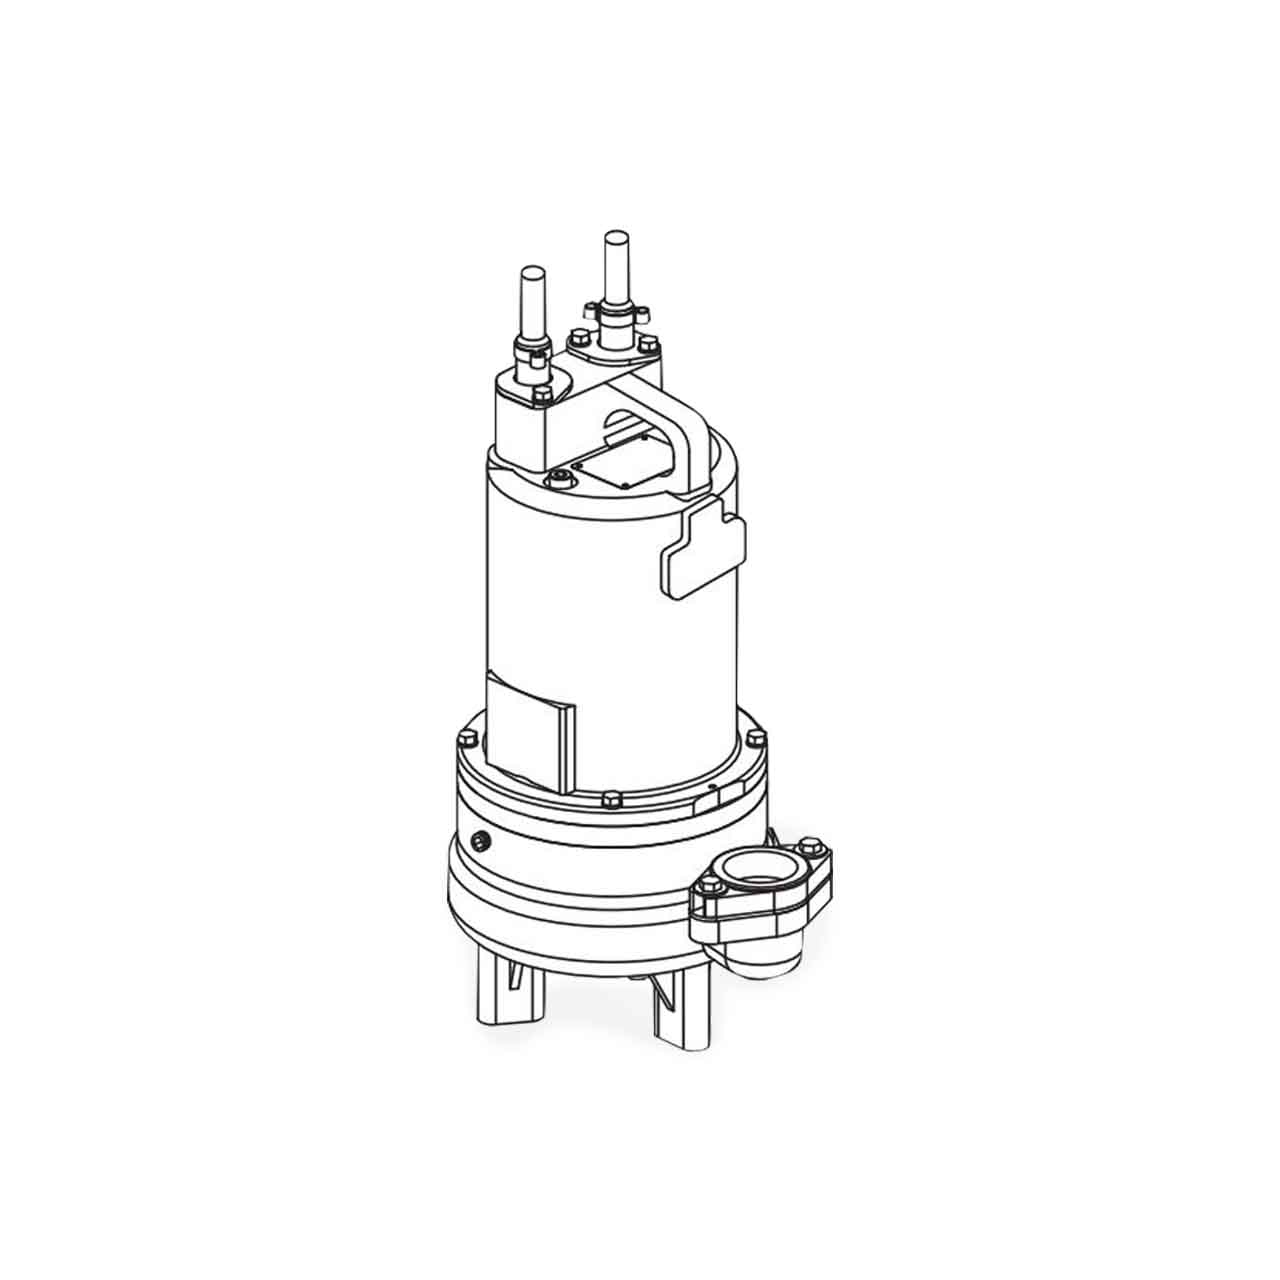 hight resolution of barnes barnes 2sev1094ds submersible double seal sewage ejector pump 1 0 hp 200 230v 3ph 20 cord manual brn104941